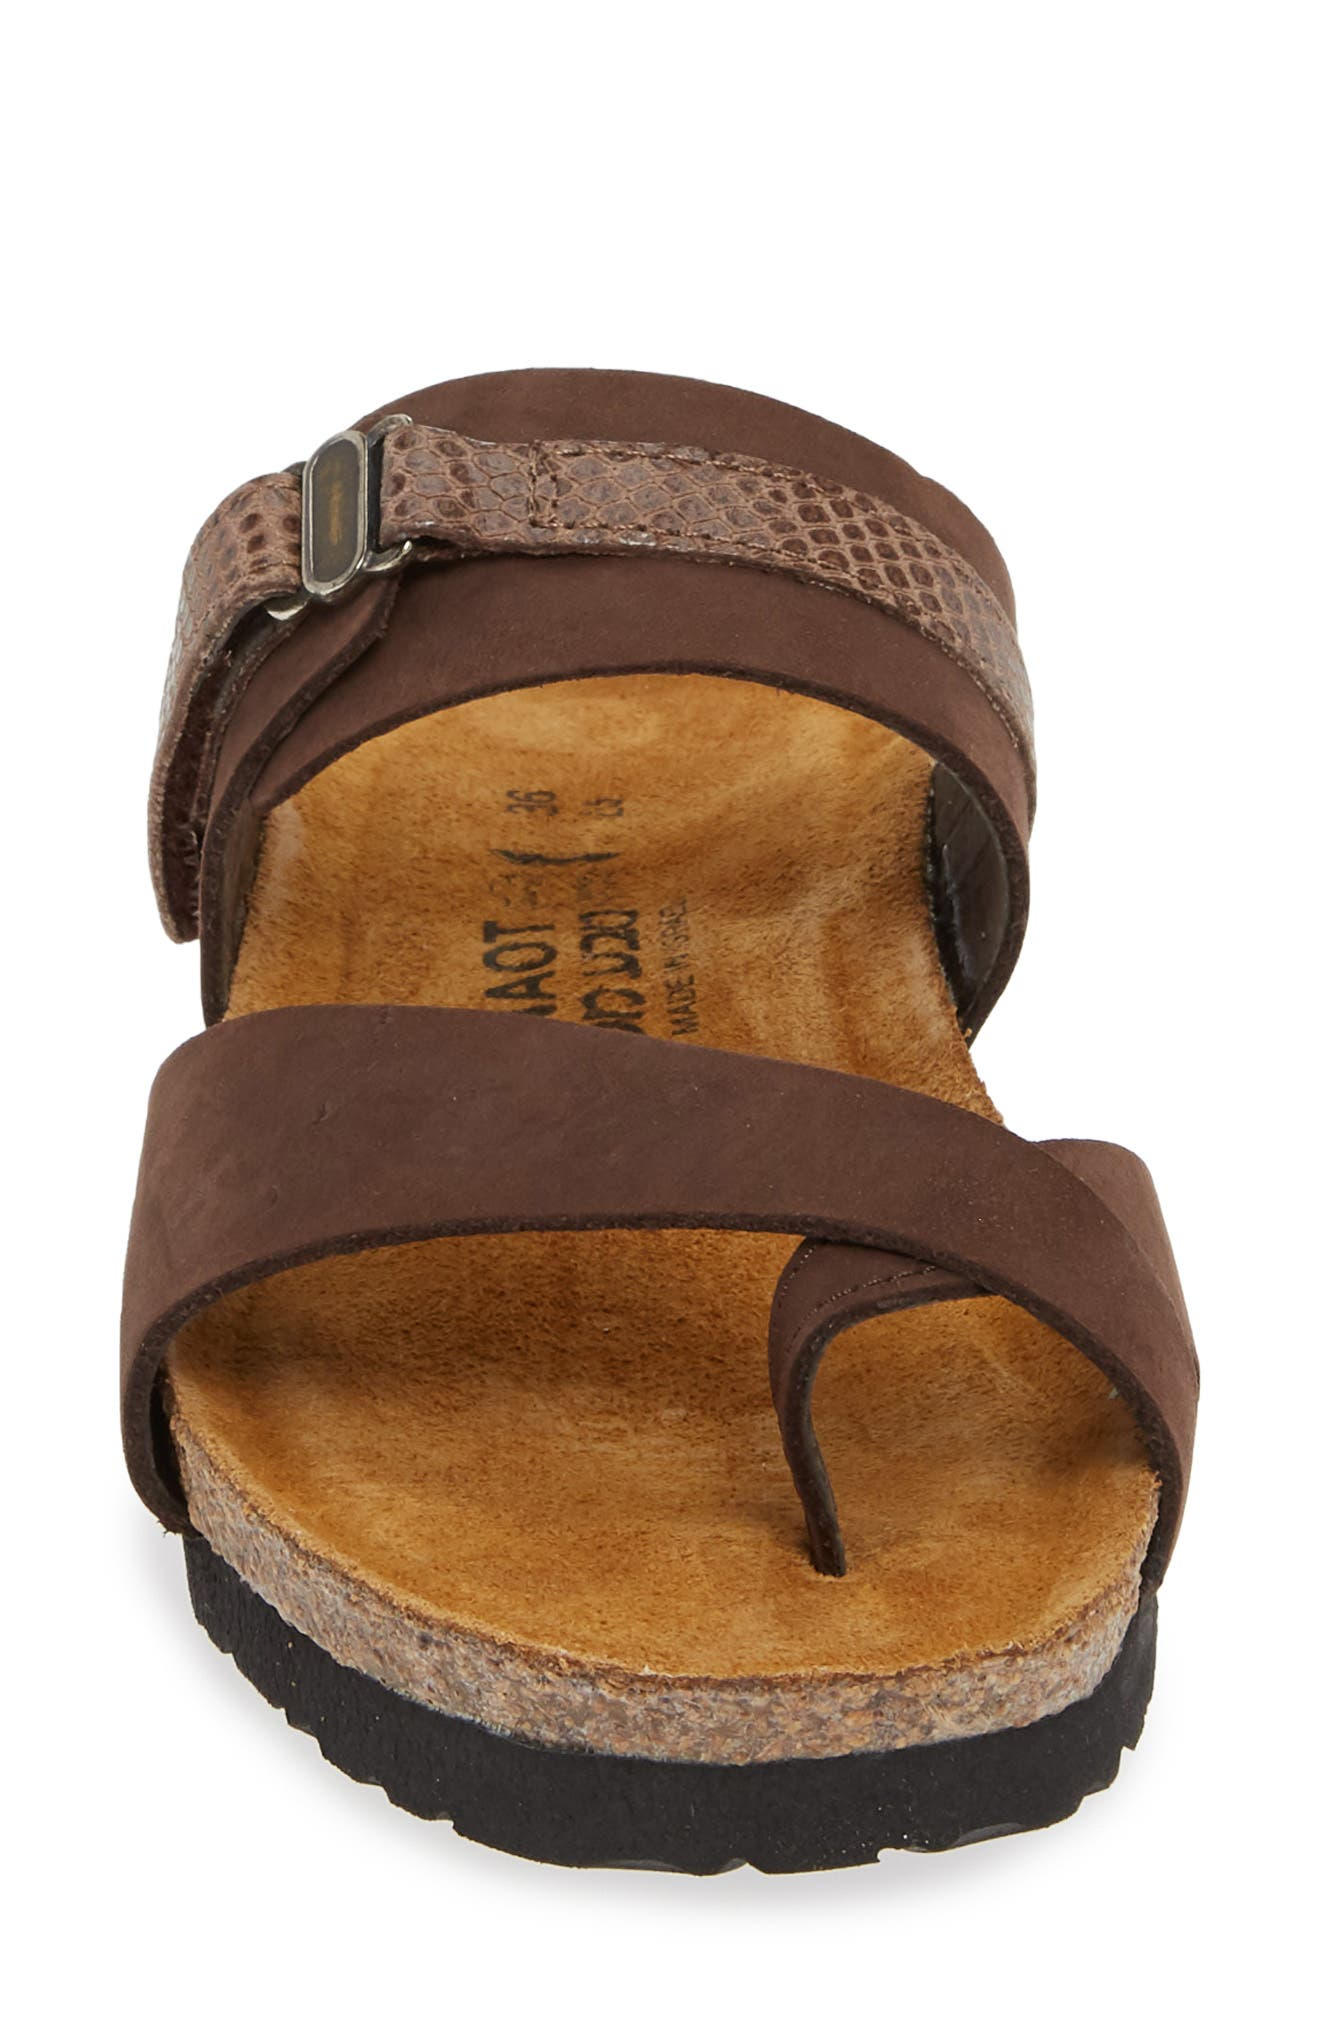 Jessica Sandal,                             Alternate thumbnail 4, color,                             COFFEE BEAN NUBUCK LEATHER